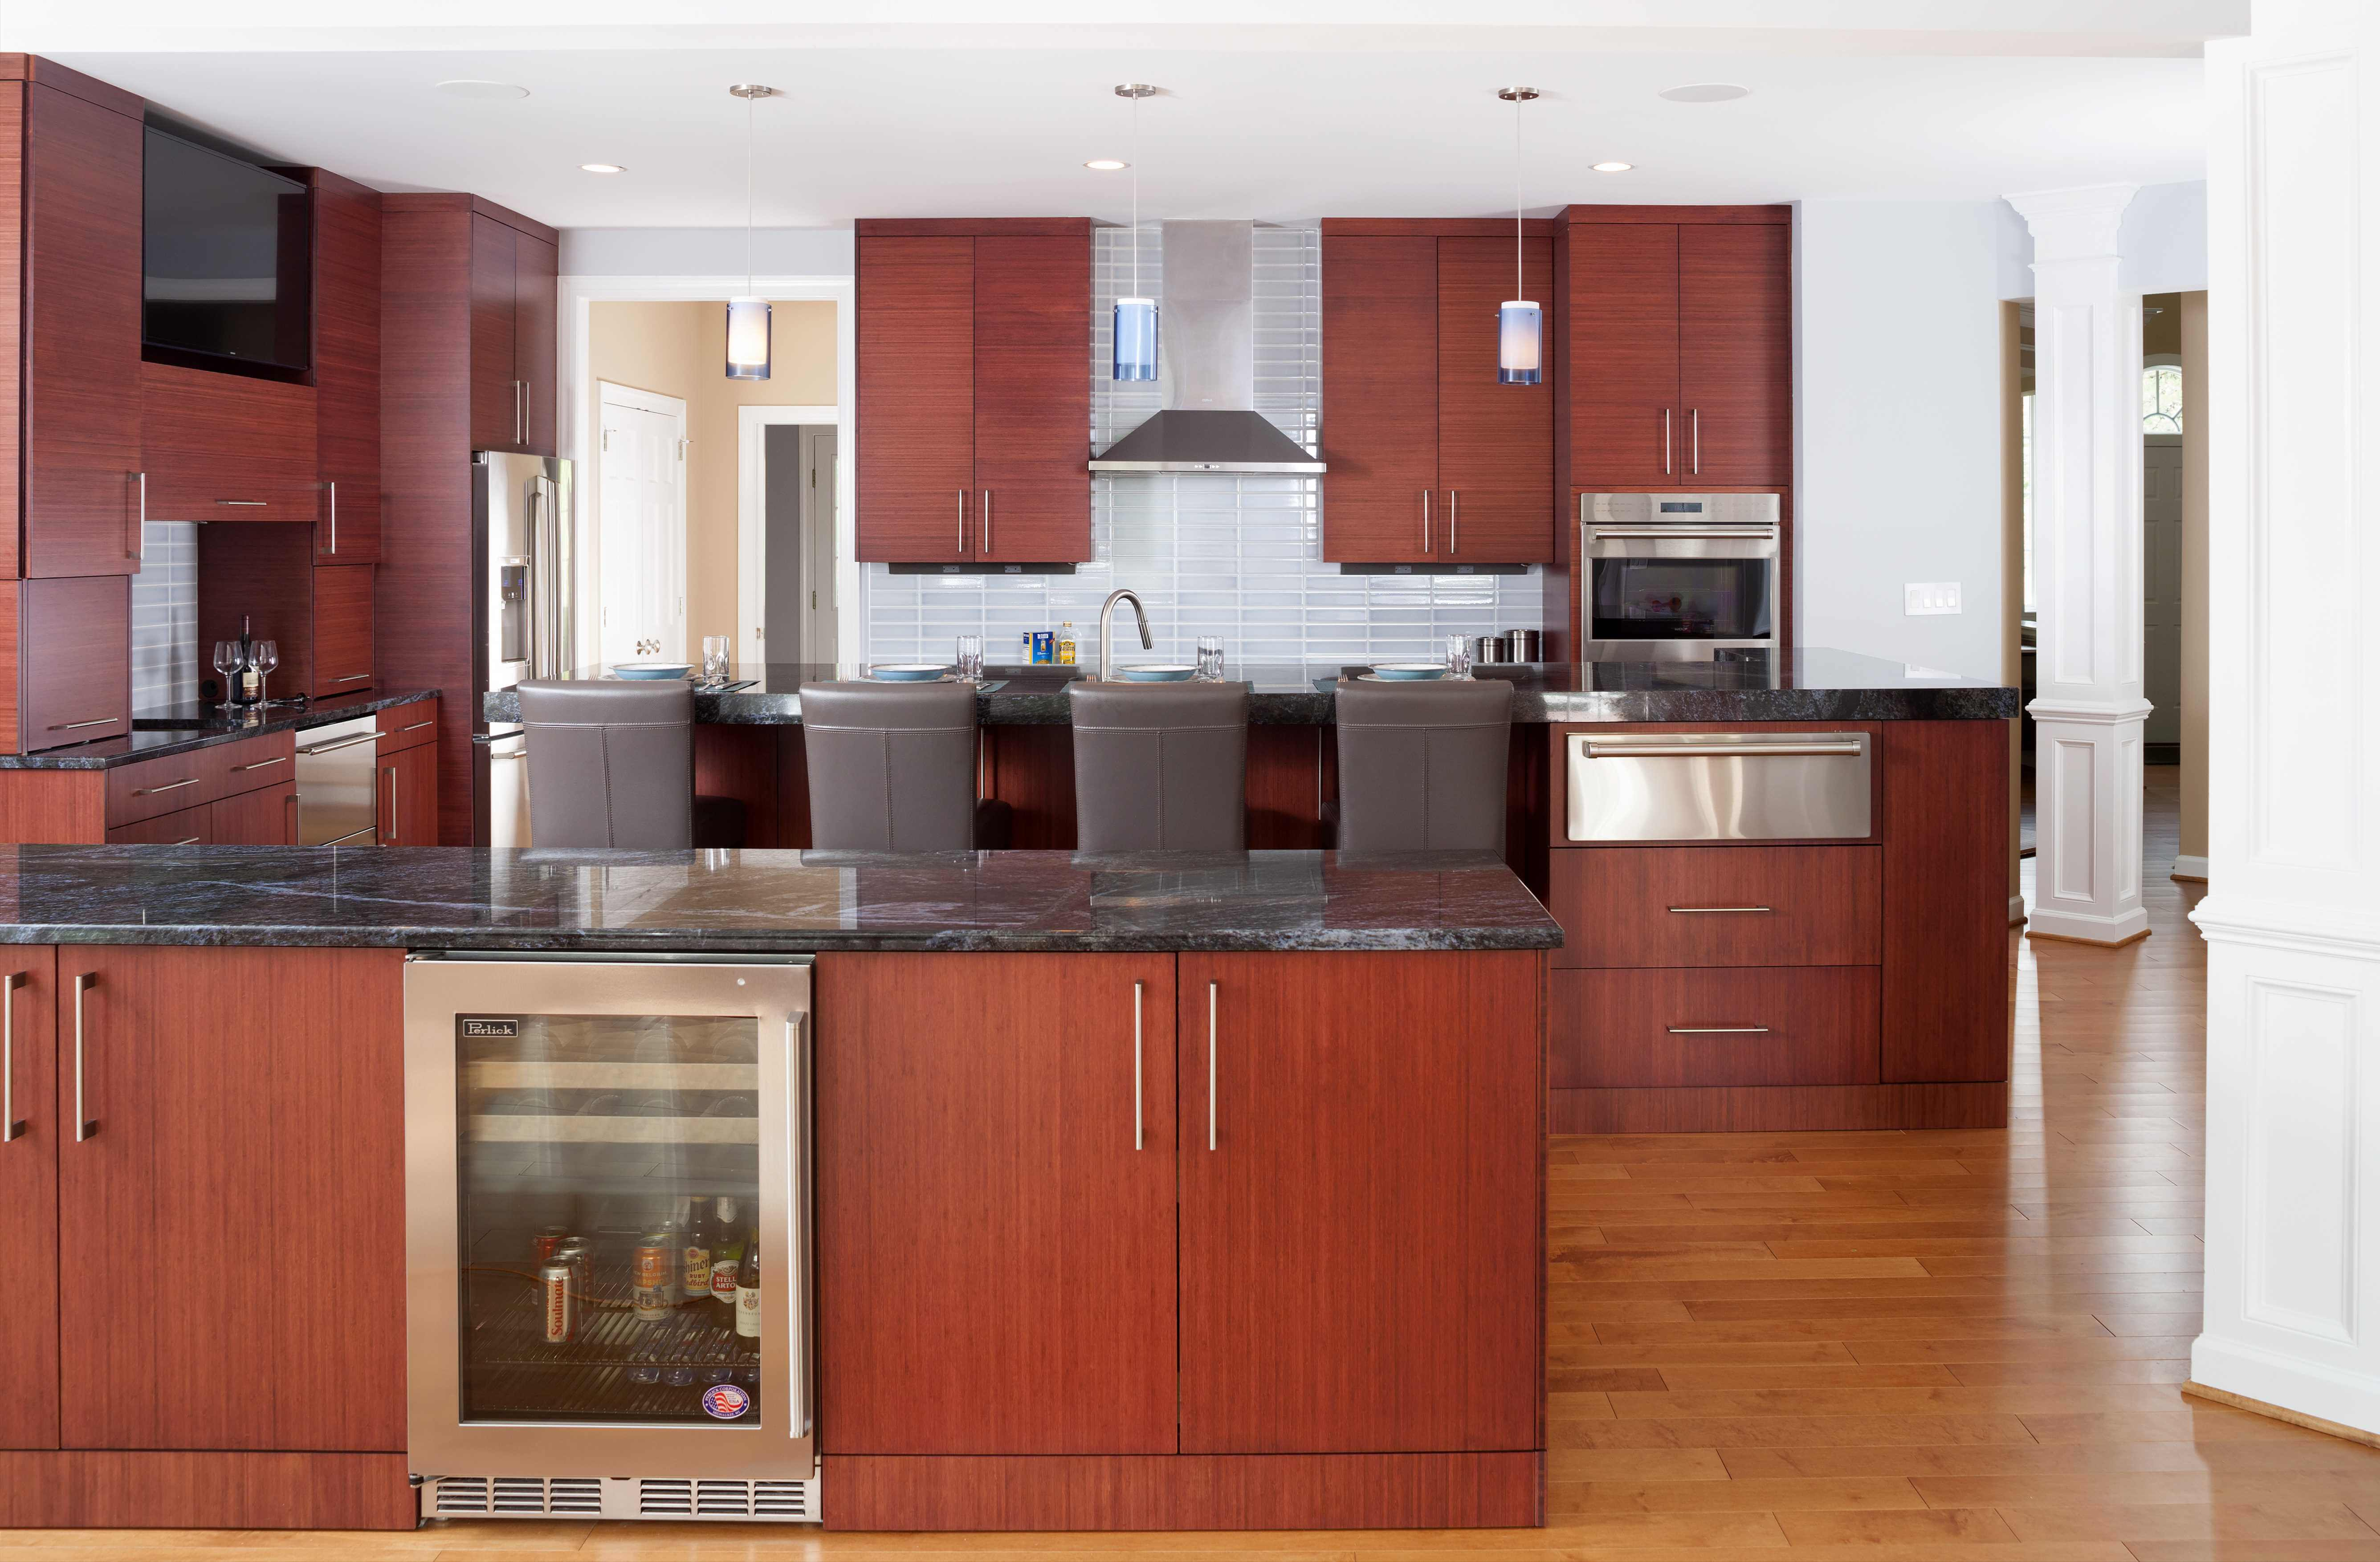 Precise Kitchens And Cabinets Kitchen Remodel Plan It In Time For Thanksgiving Case